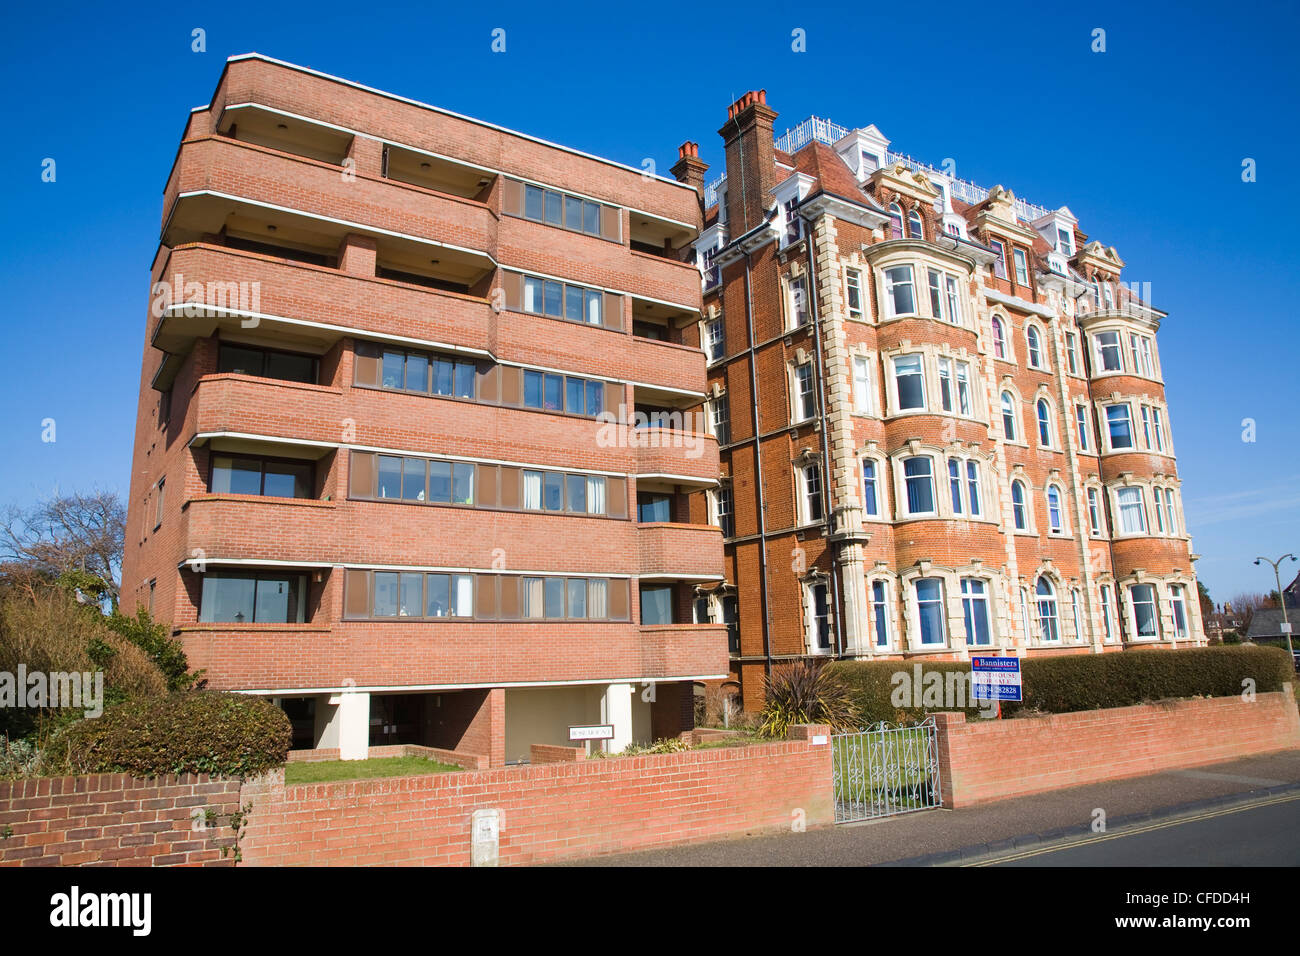 Architectural contrast between new and old buildings, Hamilton Gardens, Felixstowe, Suffolk, England - Stock Image